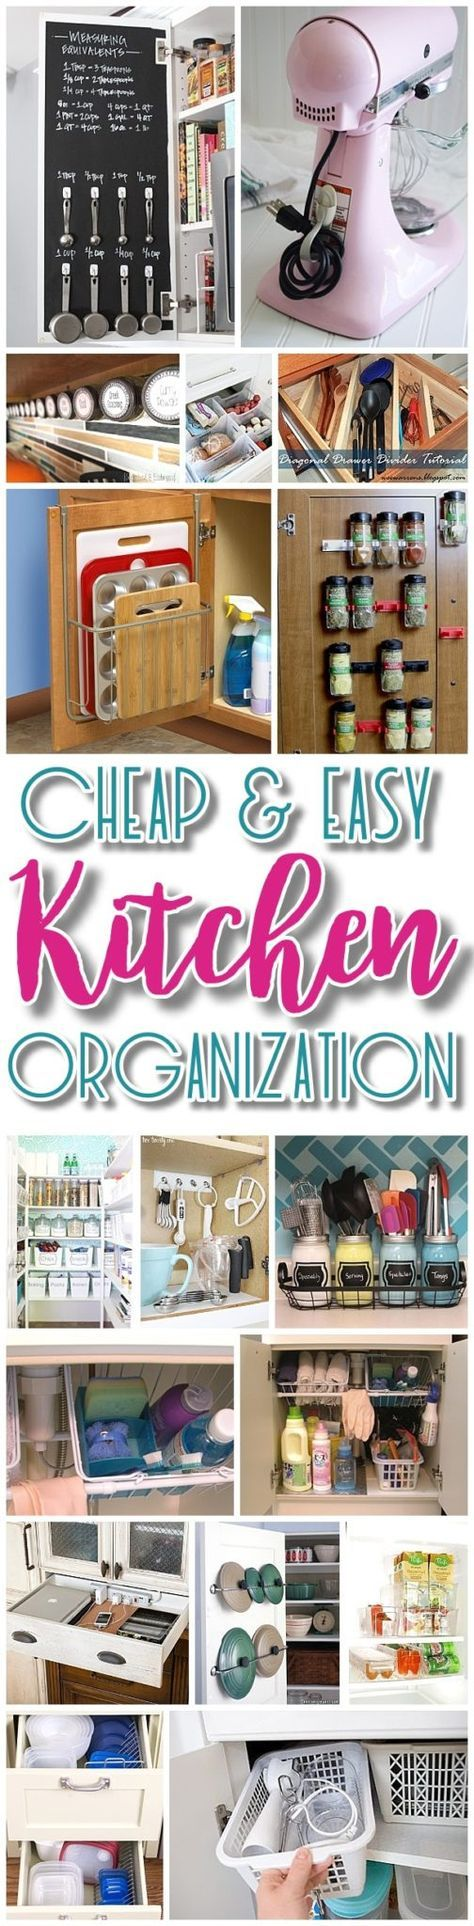 Easy and Budget Friendly Ways to Organize your Kitchen - Hacks, Ideas, Space Saving tips and tricks for Quick Organization in a small or big Kitchen - Dreaming in DIY #kitchenhacks #KitchenOrganization #kitchenideas